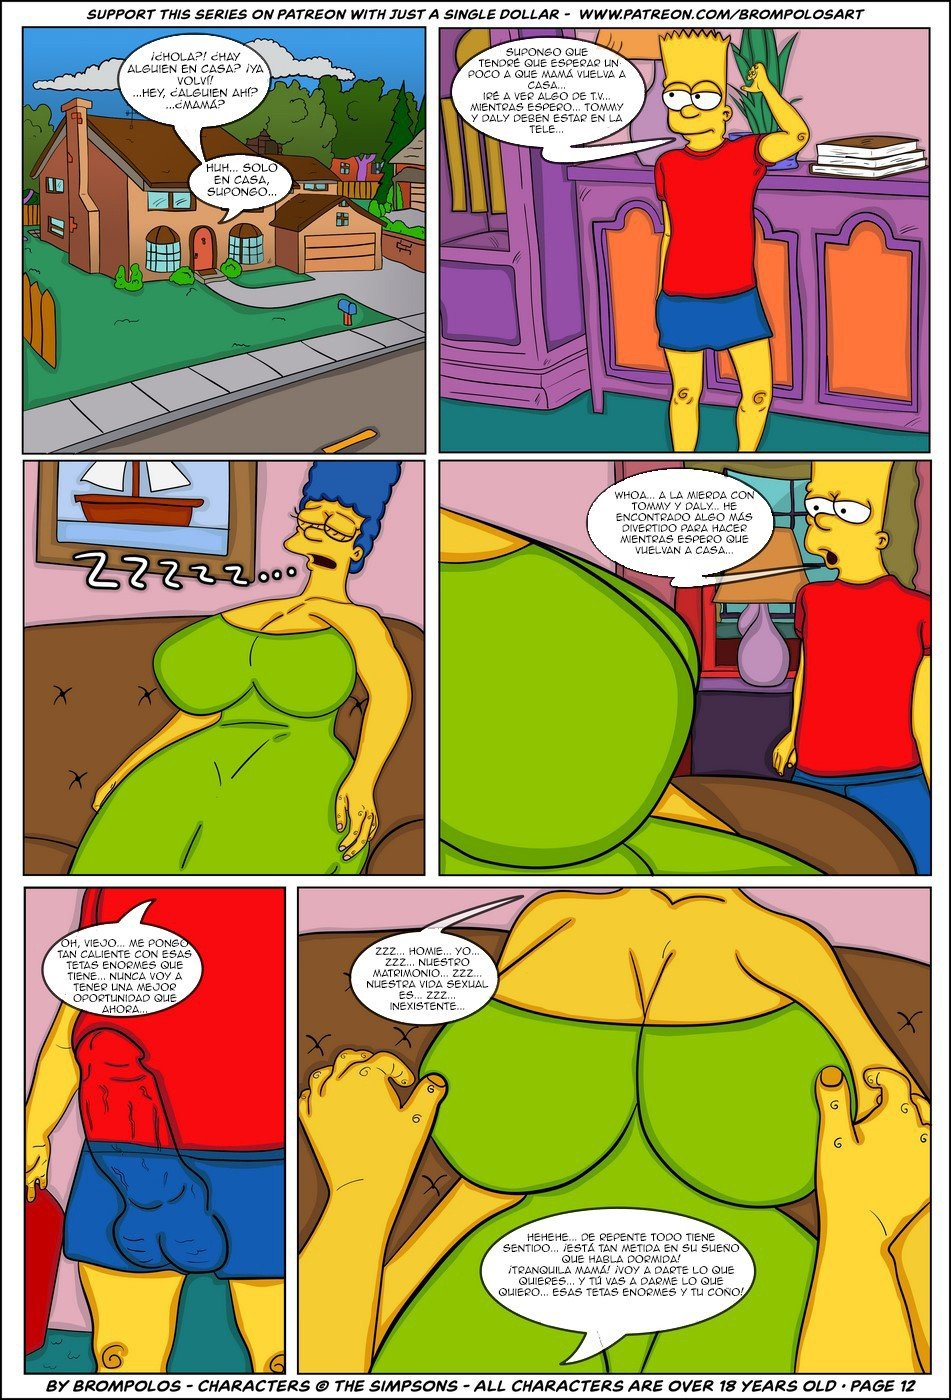 The Simpsons are The Sexenteins - 14